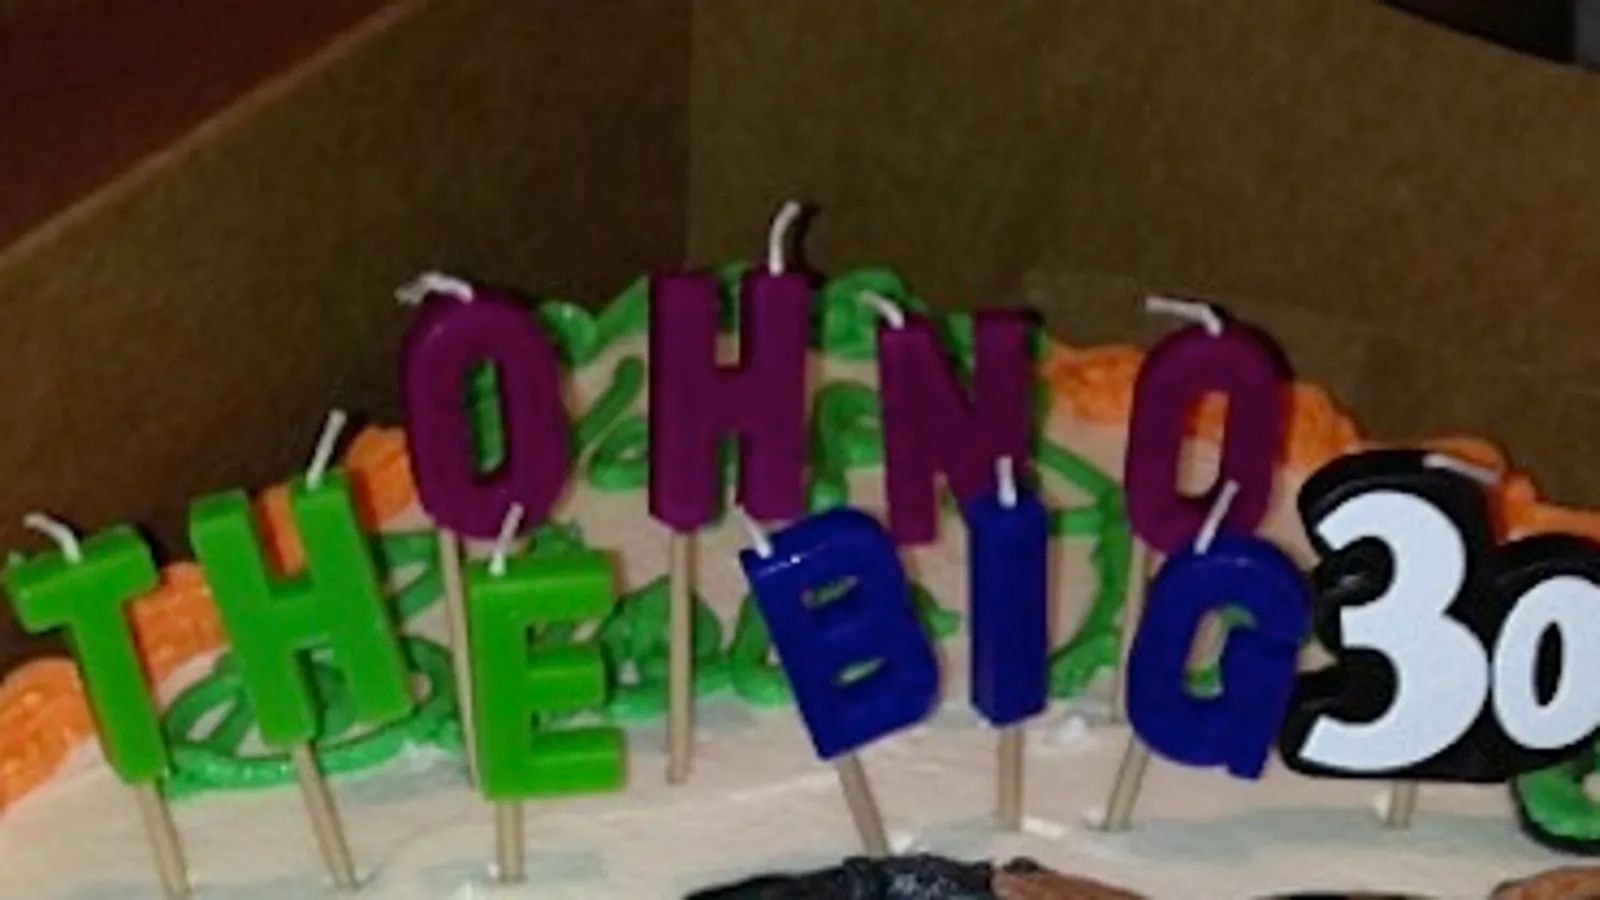 brent grimes got a very nsfw cake for his 30th birthday